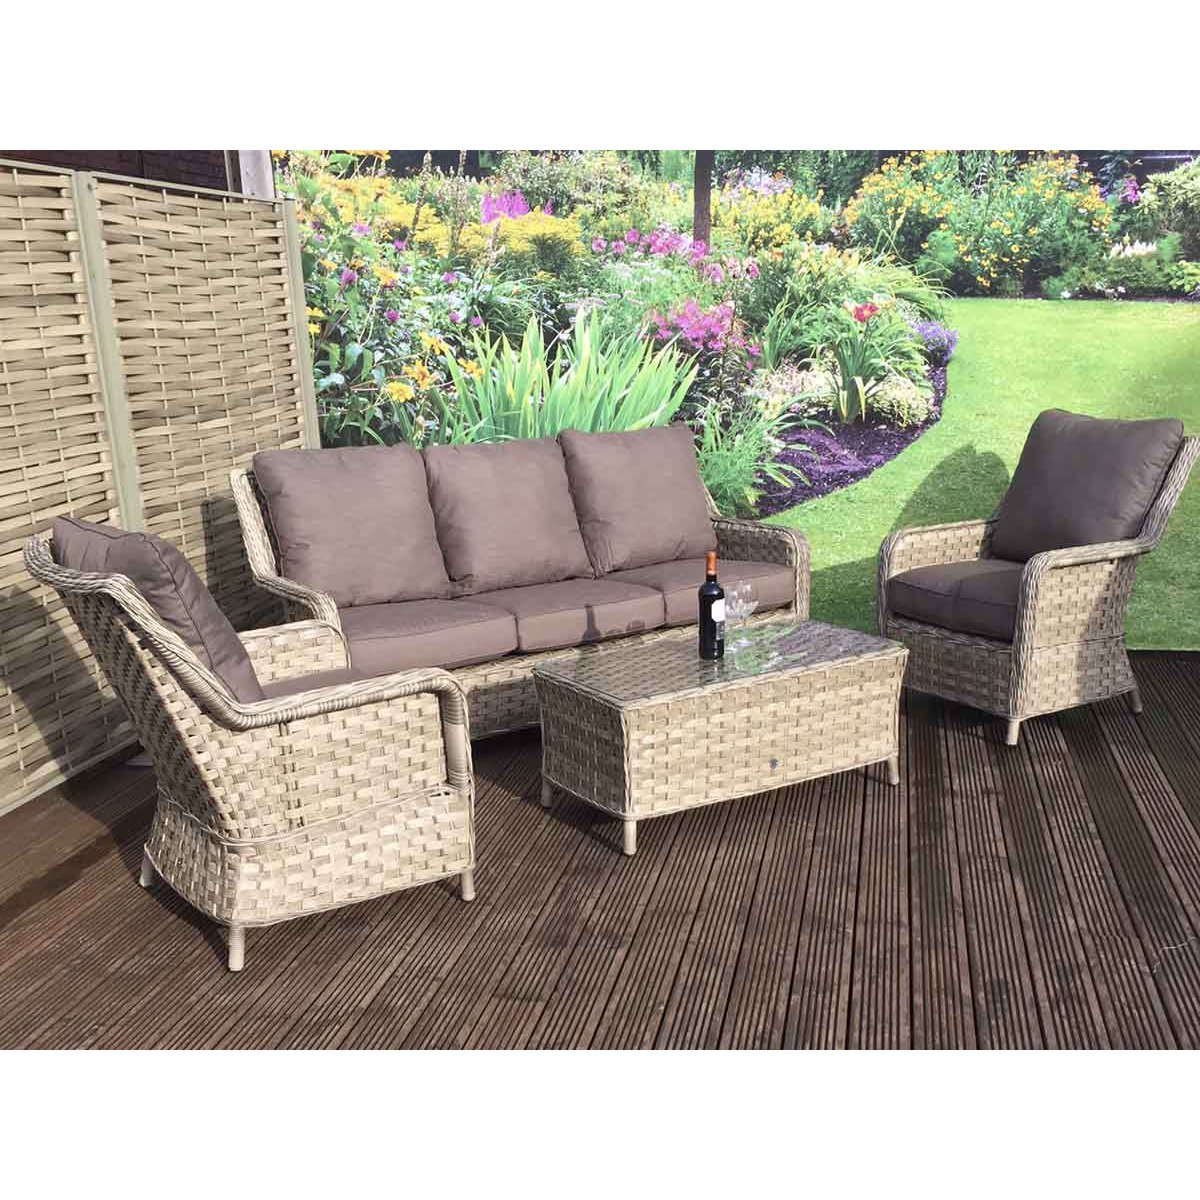 image-Signature Weave Garden Furniture Mia 3 Seater Sofa Set in 3 Weave Caramel